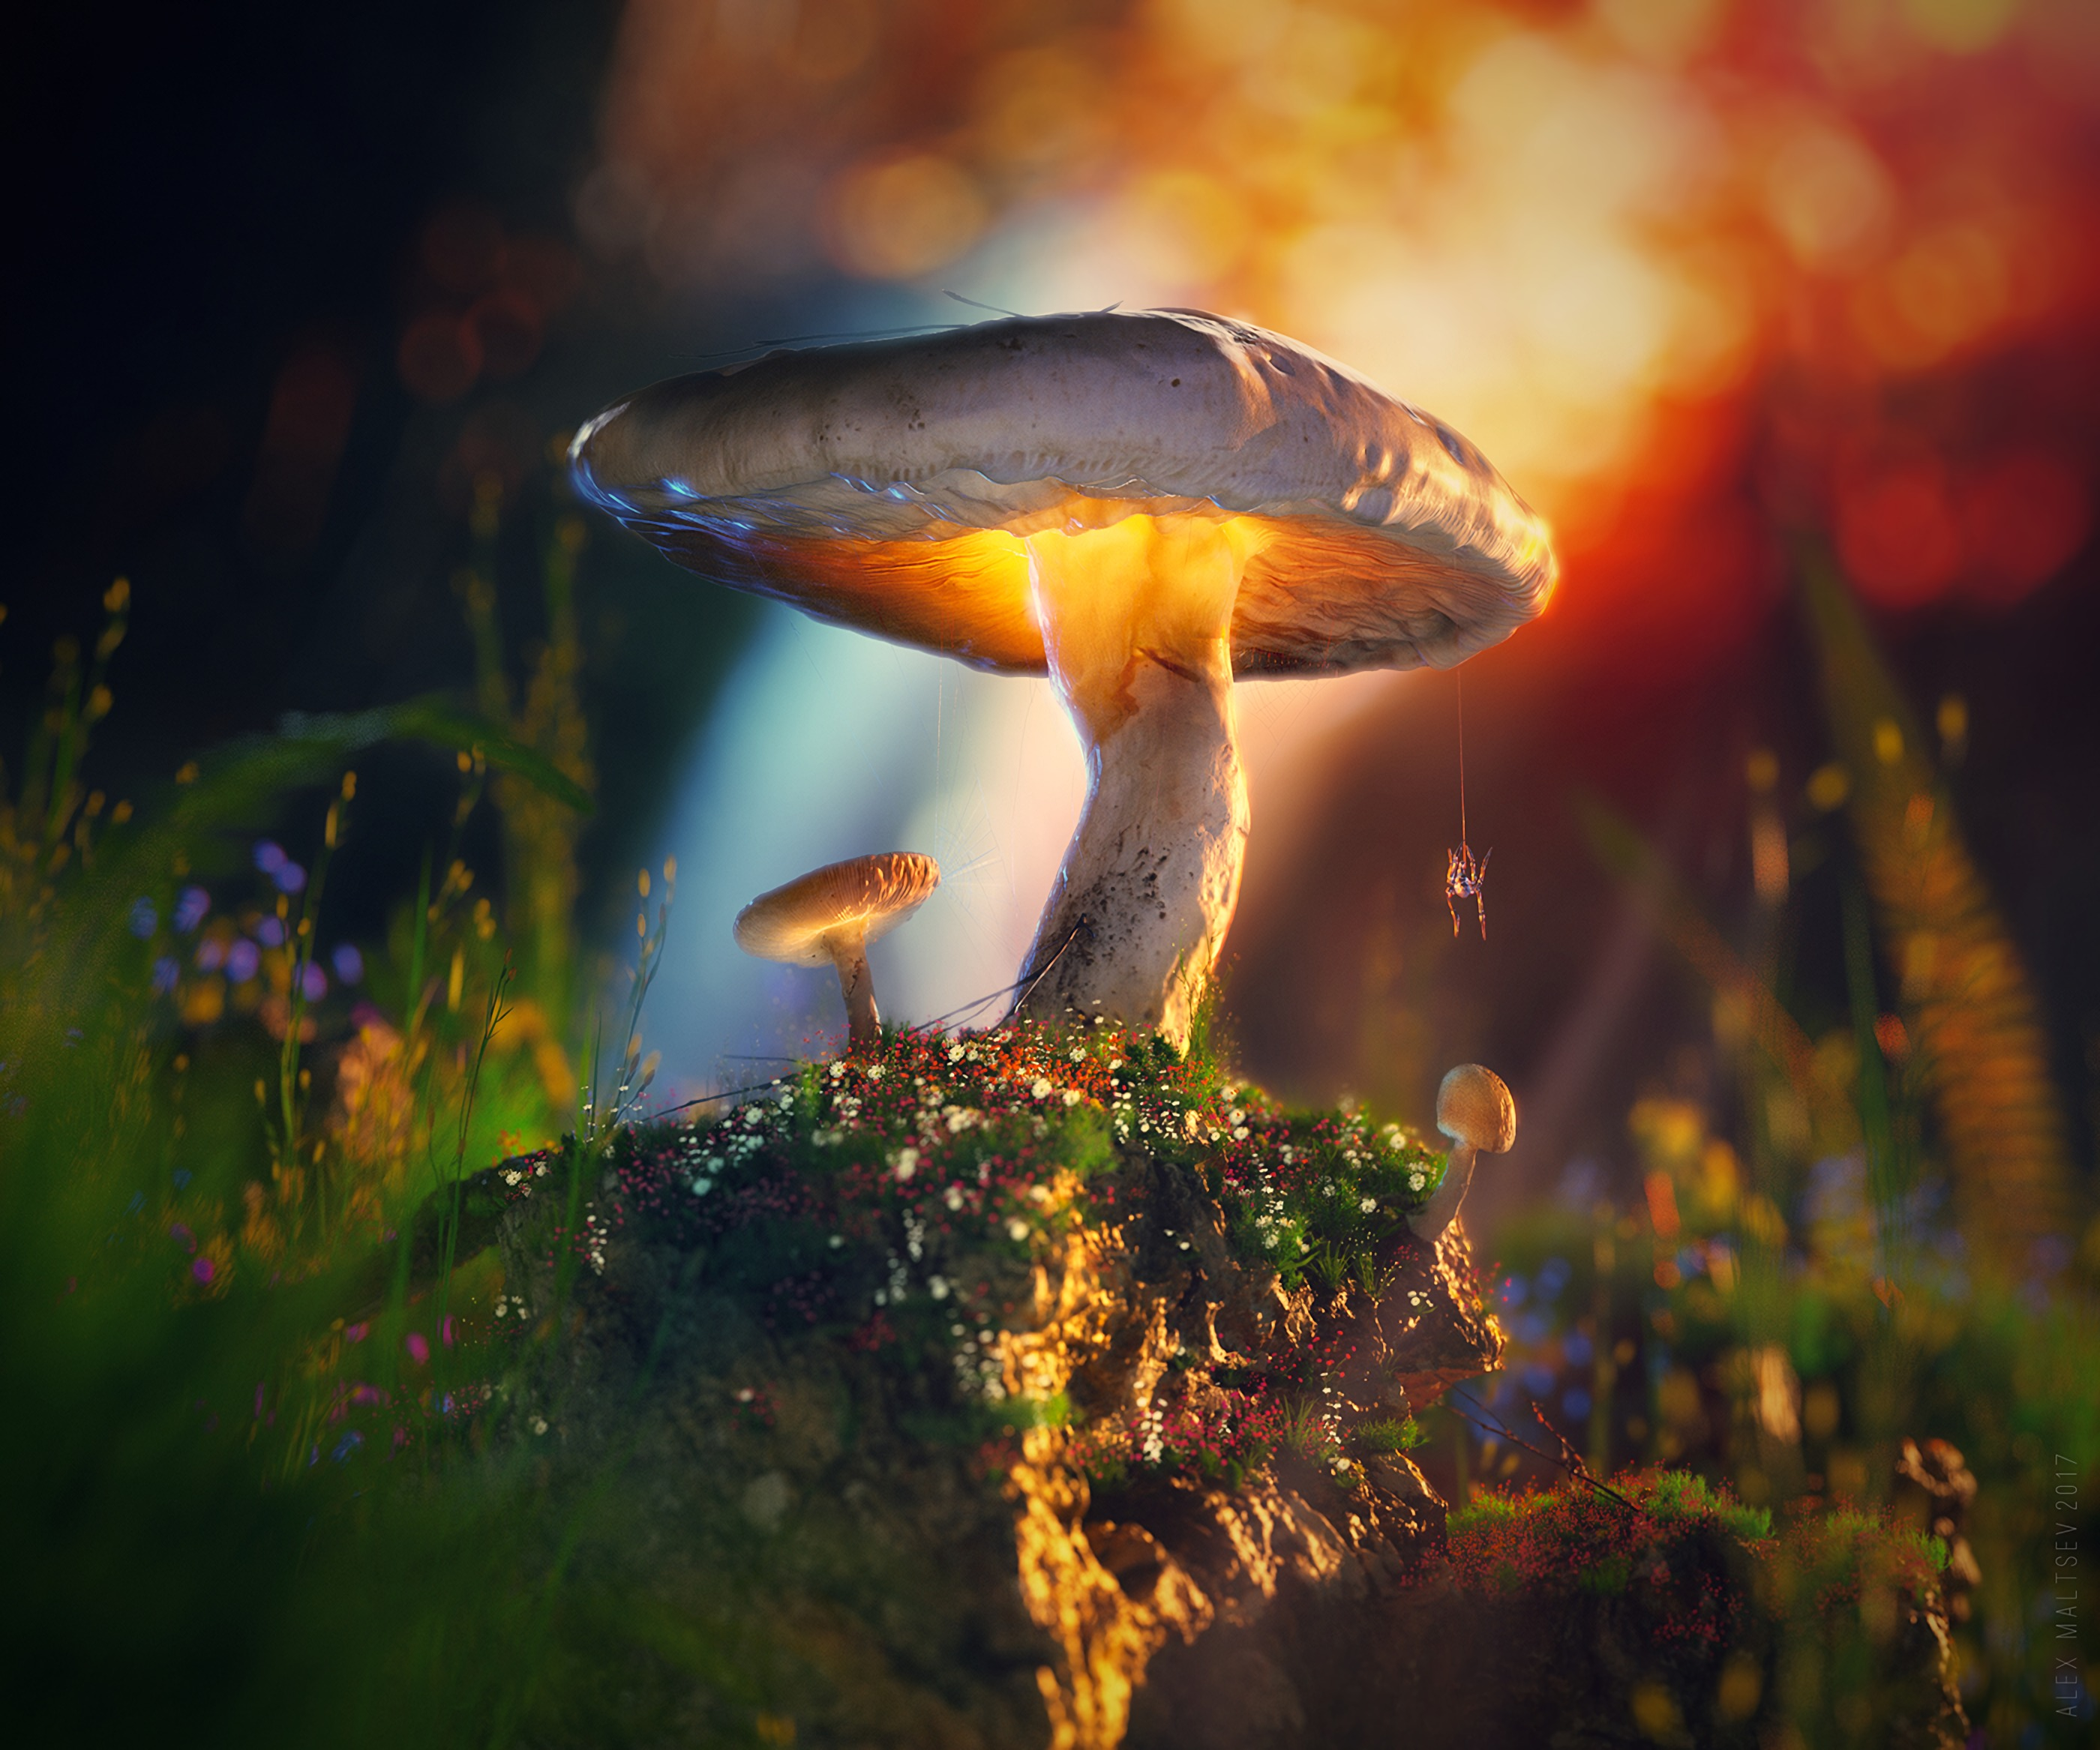 92355 download wallpaper 3D, Mashrooms, Macro, Glow, Spider screensavers and pictures for free